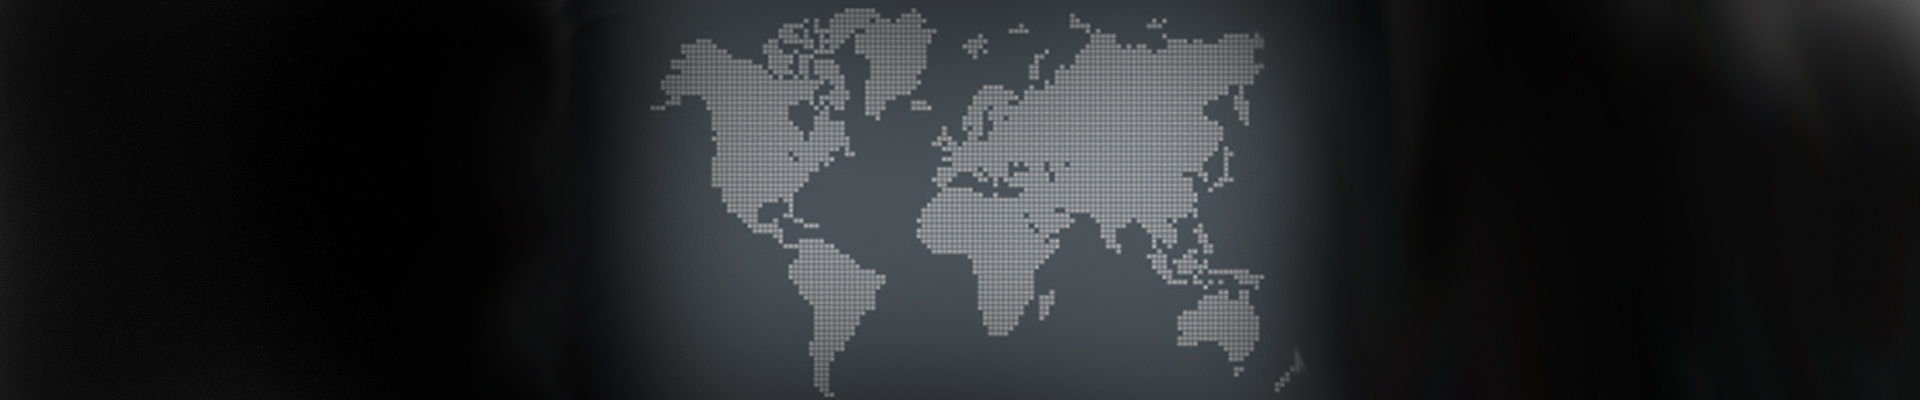 Global-locations-banner-1920-x-400.jpg